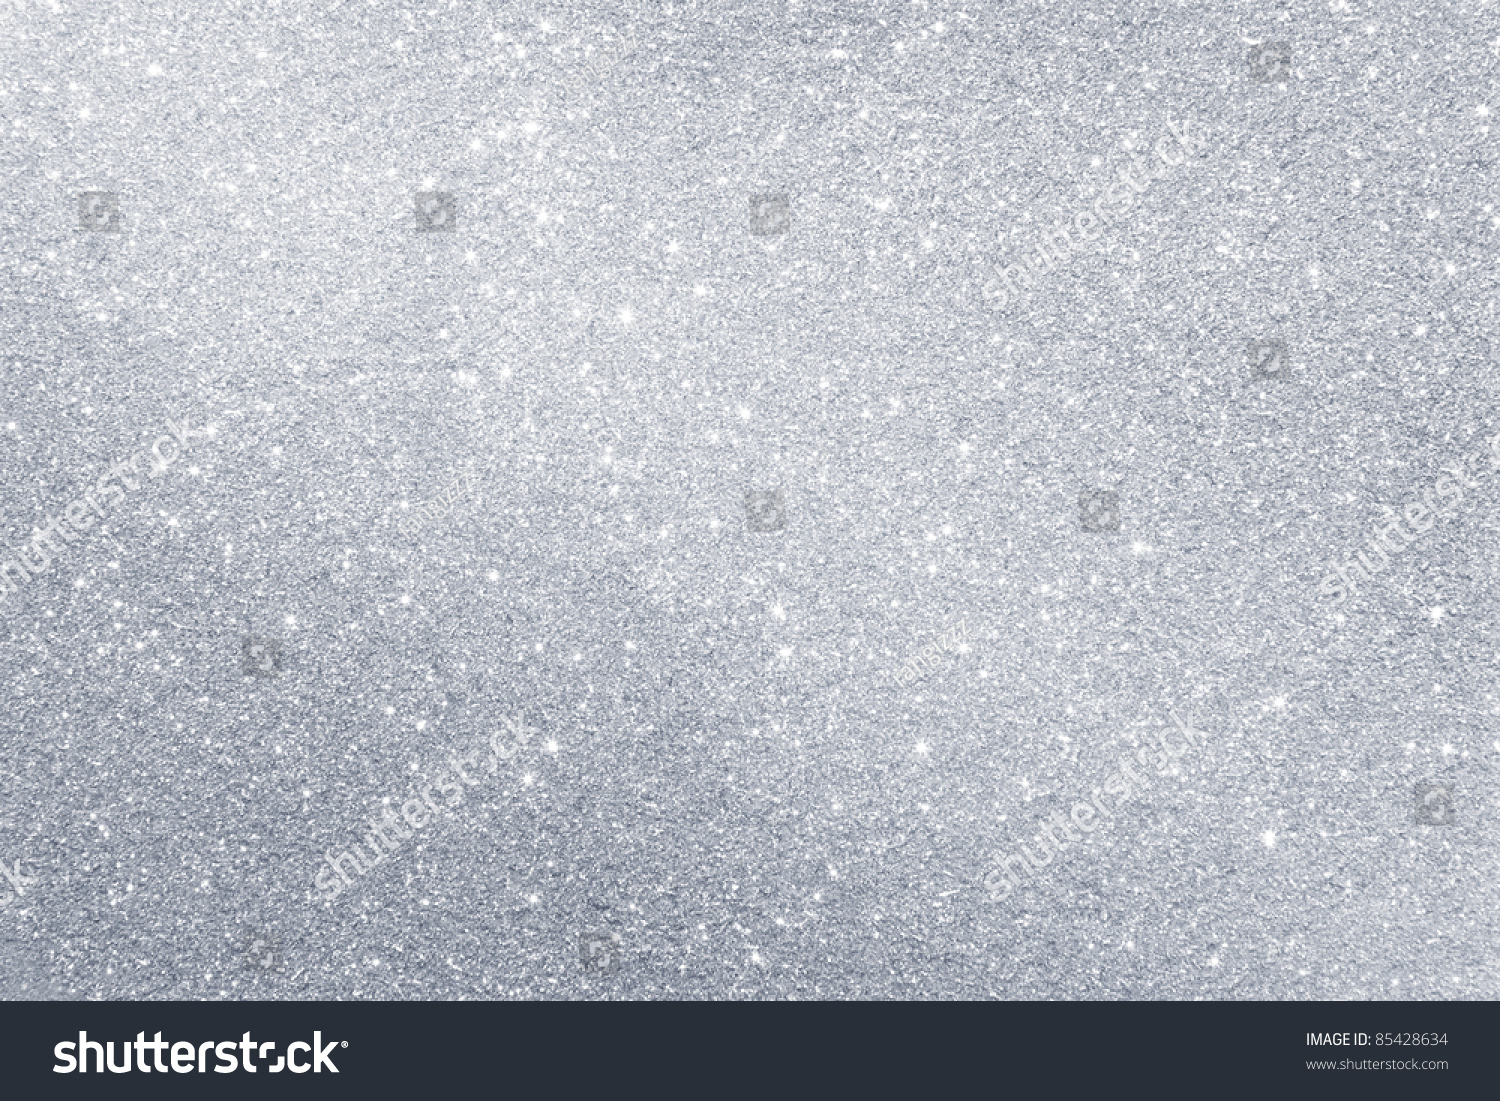 Abstract silver background with copy space #85428634